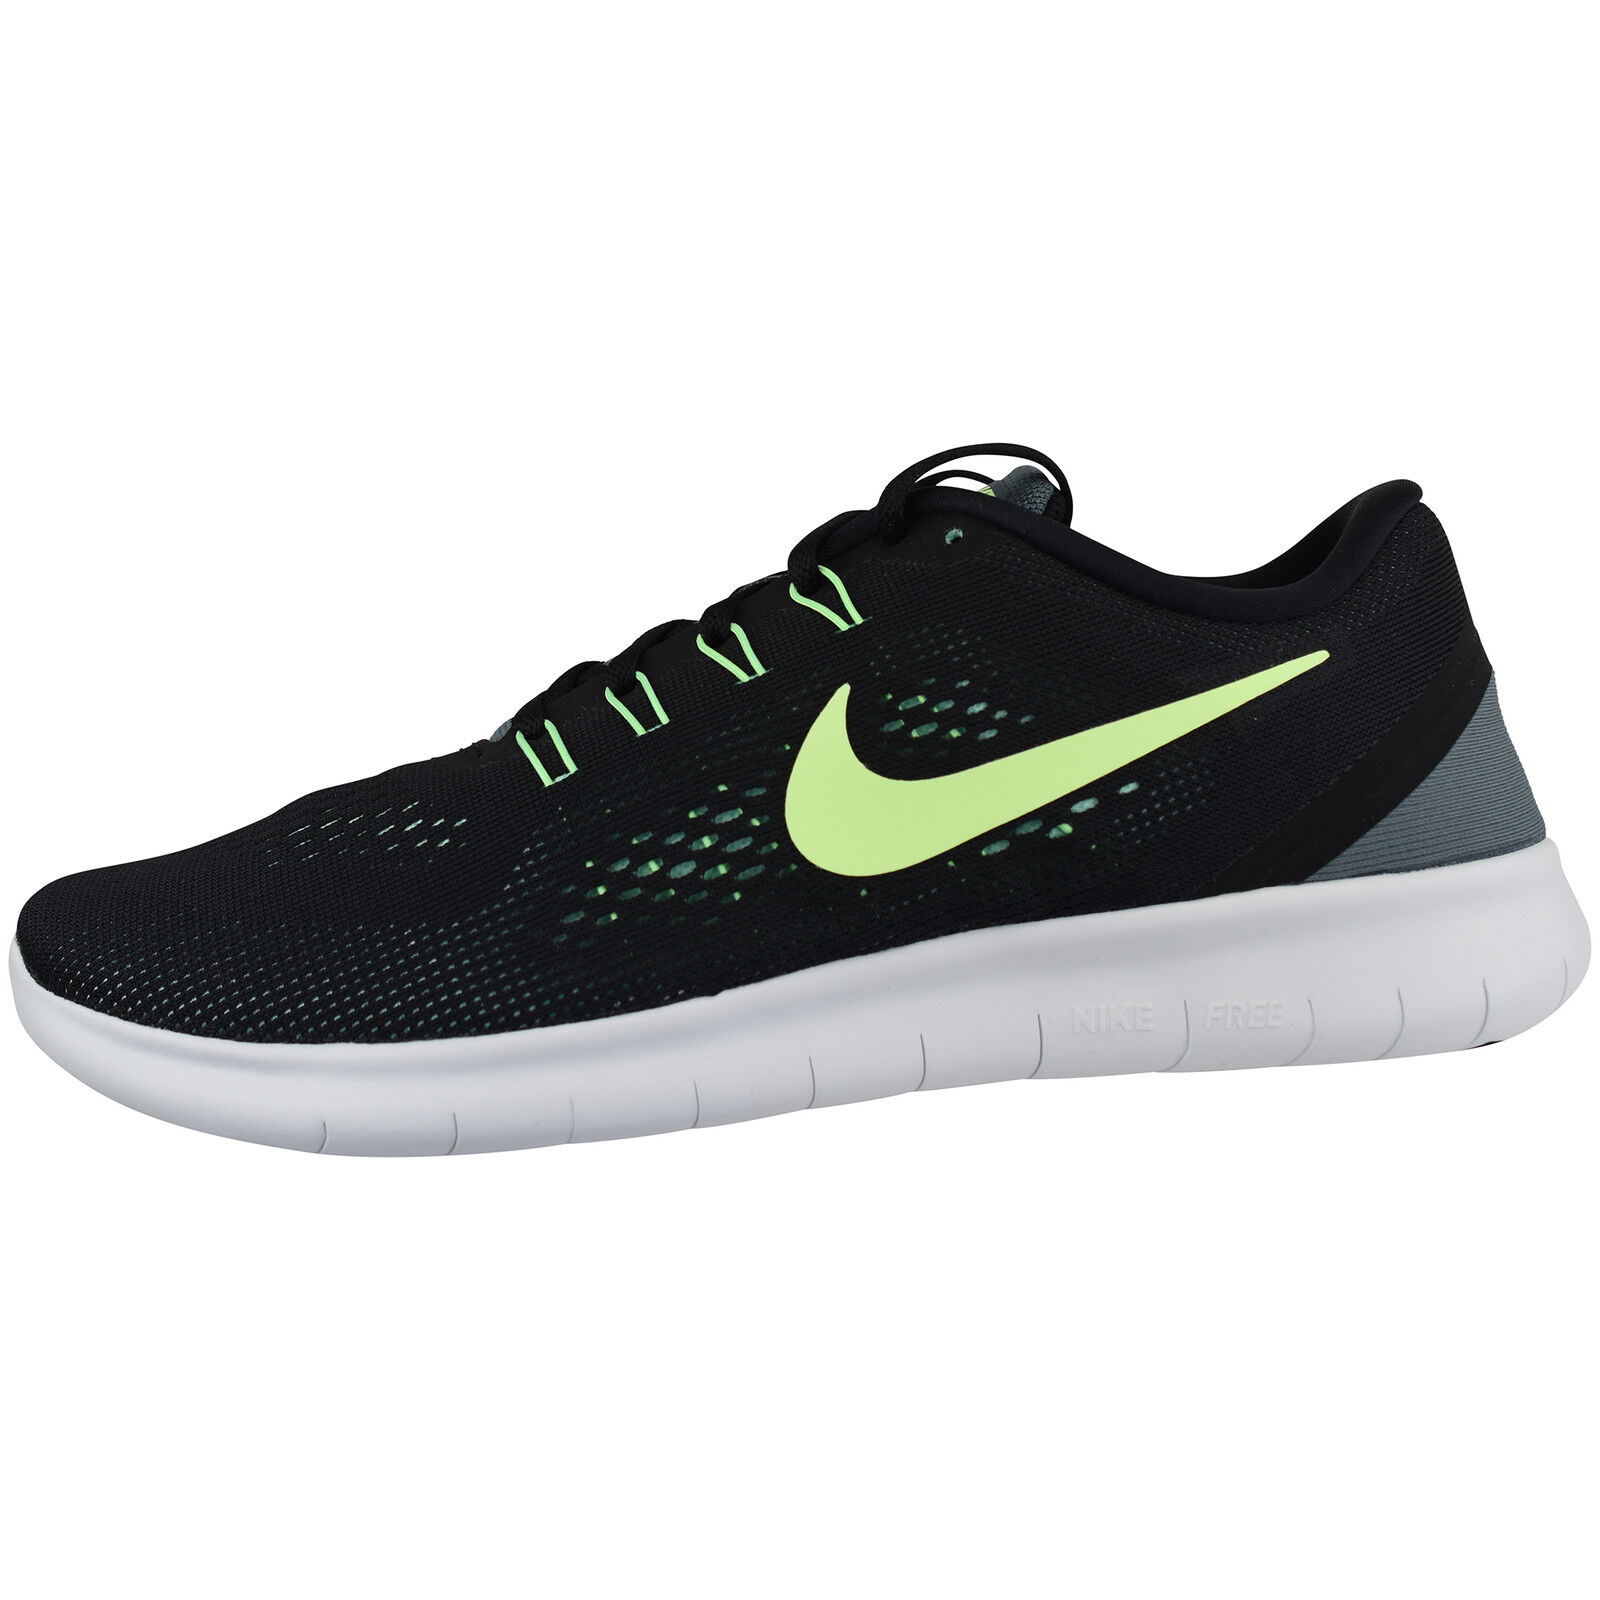 Nike Free RN 831508-006 Running Running Leisure Running Shoes Trainers